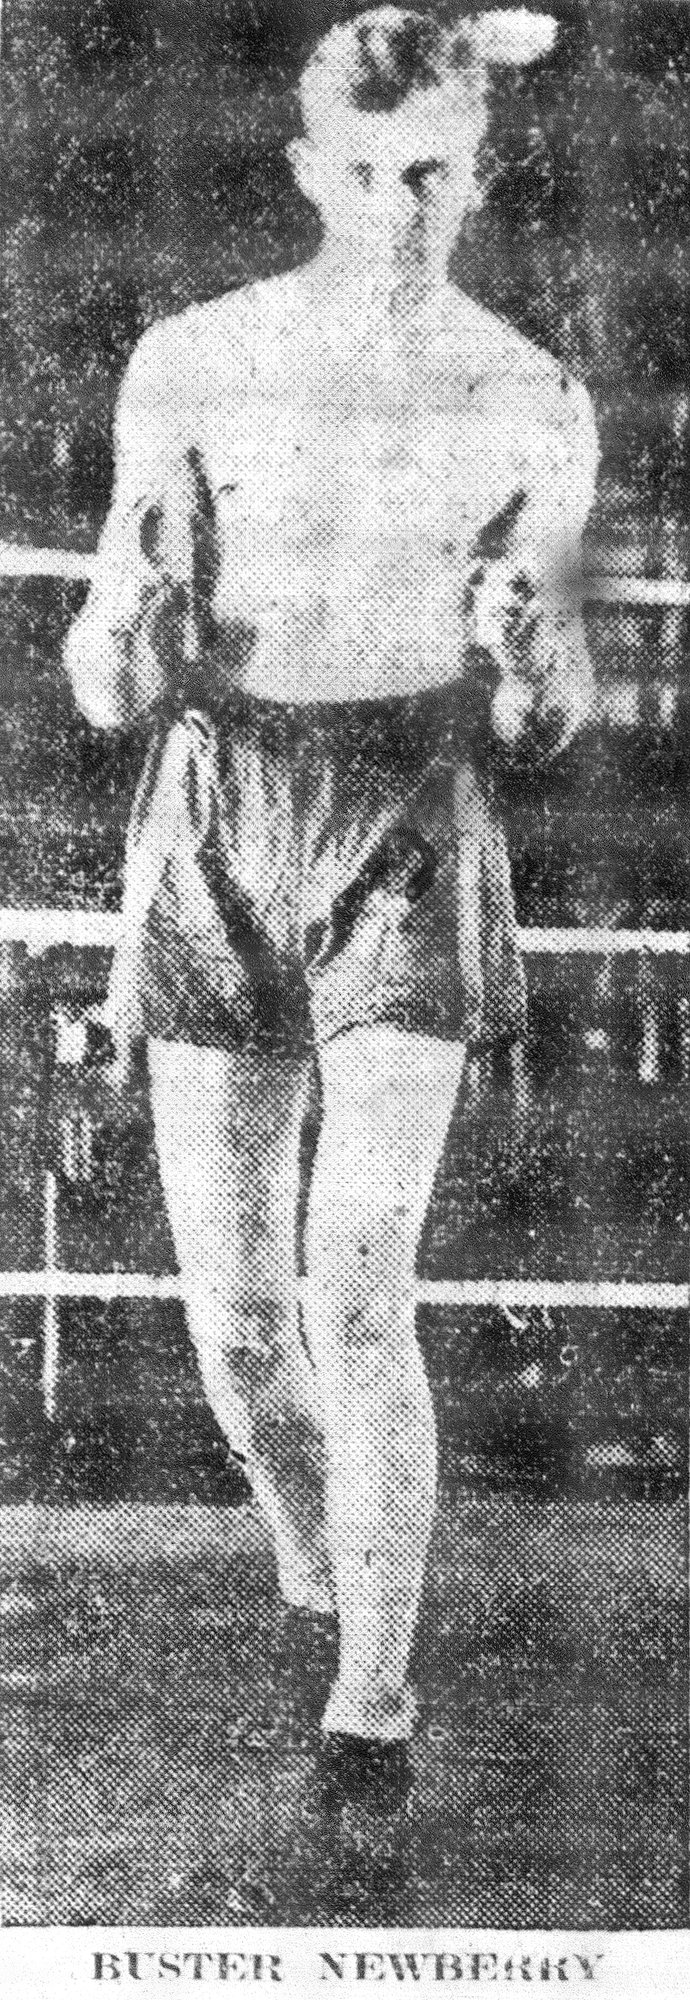 Buster Newberry is seen in the ring. Buster Newberry and Bob Montgomery both brought boxing fame to South Carolina with their wins in the ring. Newberry began boxing in the early 1920s, while Montgomery began his boxing career in 1943. Newberry was born in Florida and came to Sumter as a title holder, while Montgomery was born in Sumter and began his career in Philadelphia.